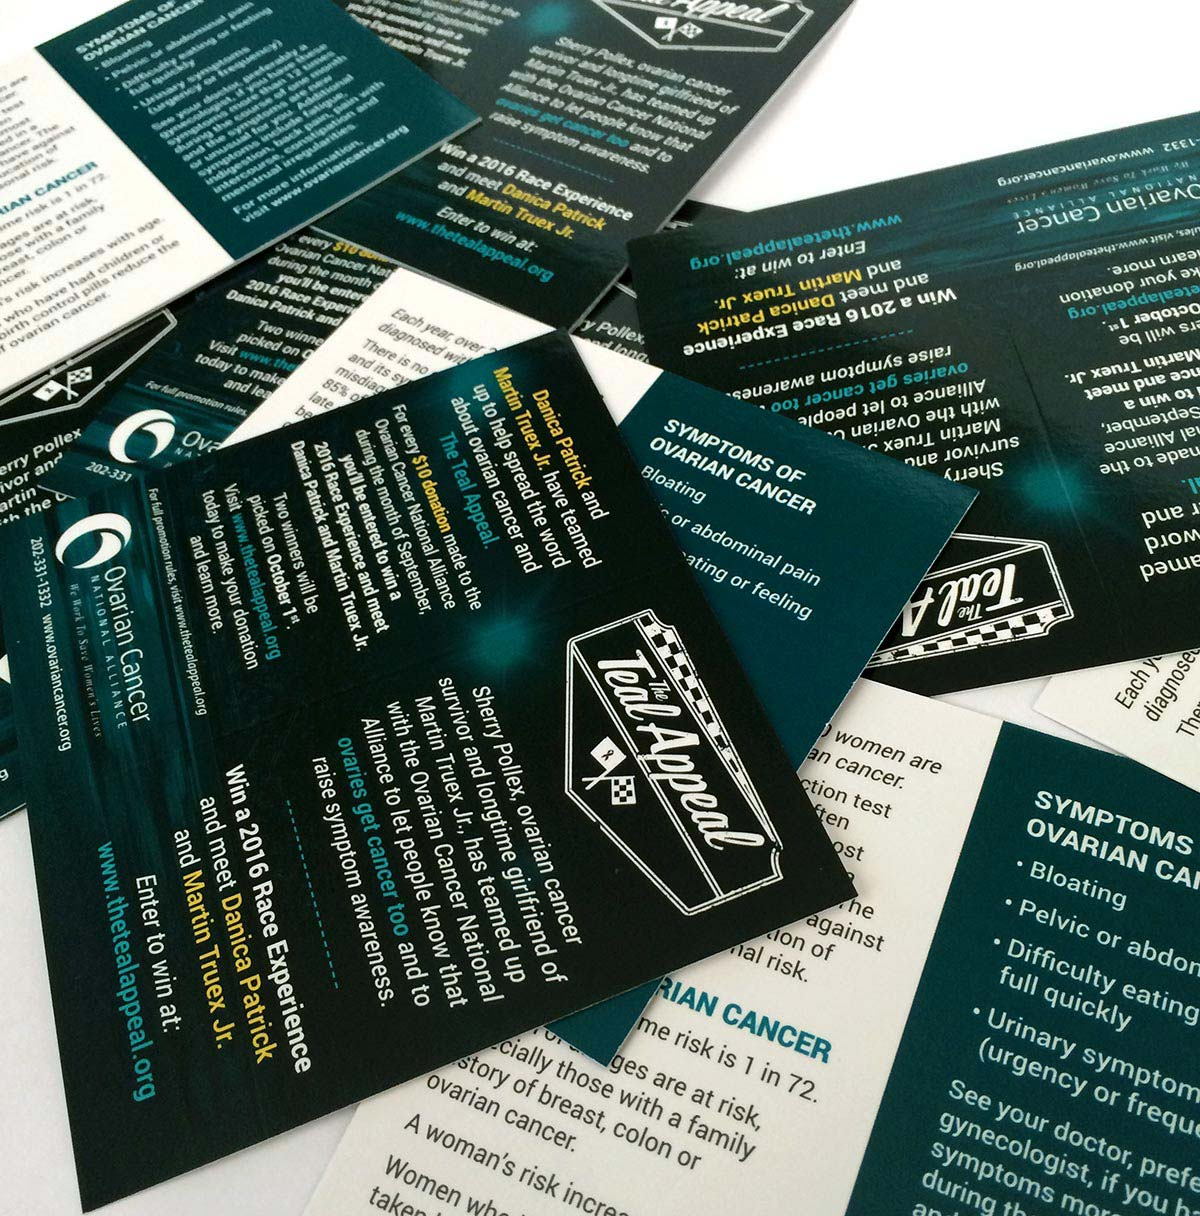 Photo of a stack of Teal Appeal Symptom and Promotion Cards